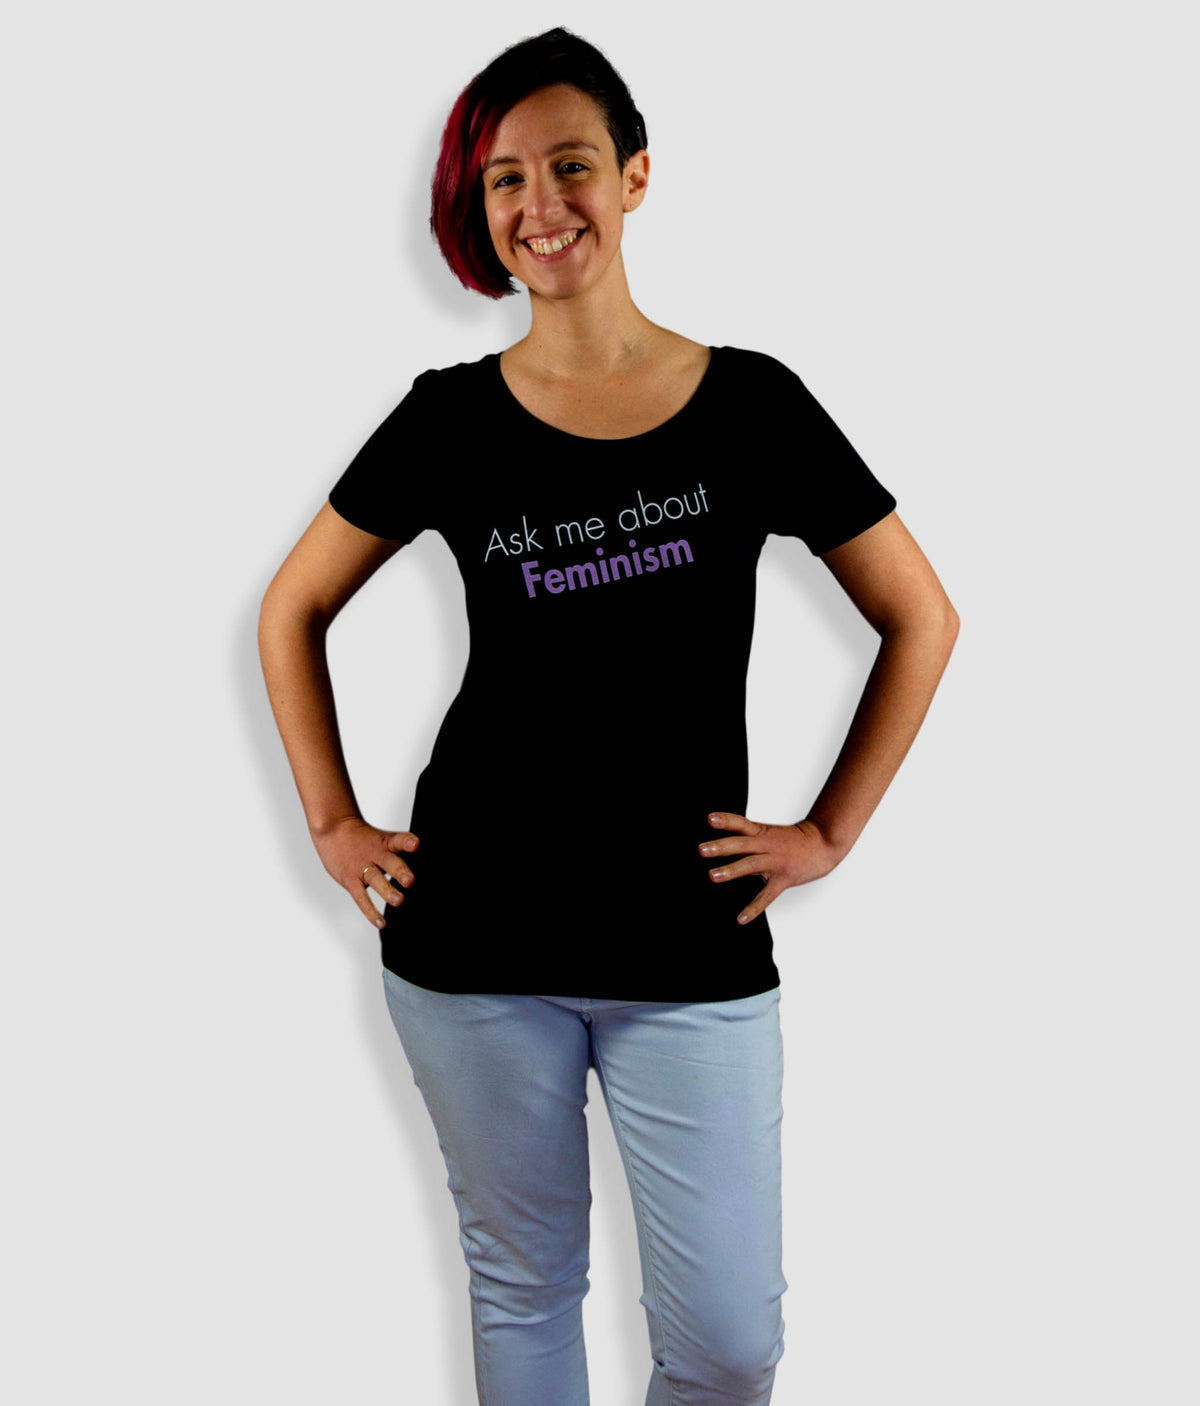 Open Neck Organic Feminist T Shirt - Ask Me About Feminism, Bold